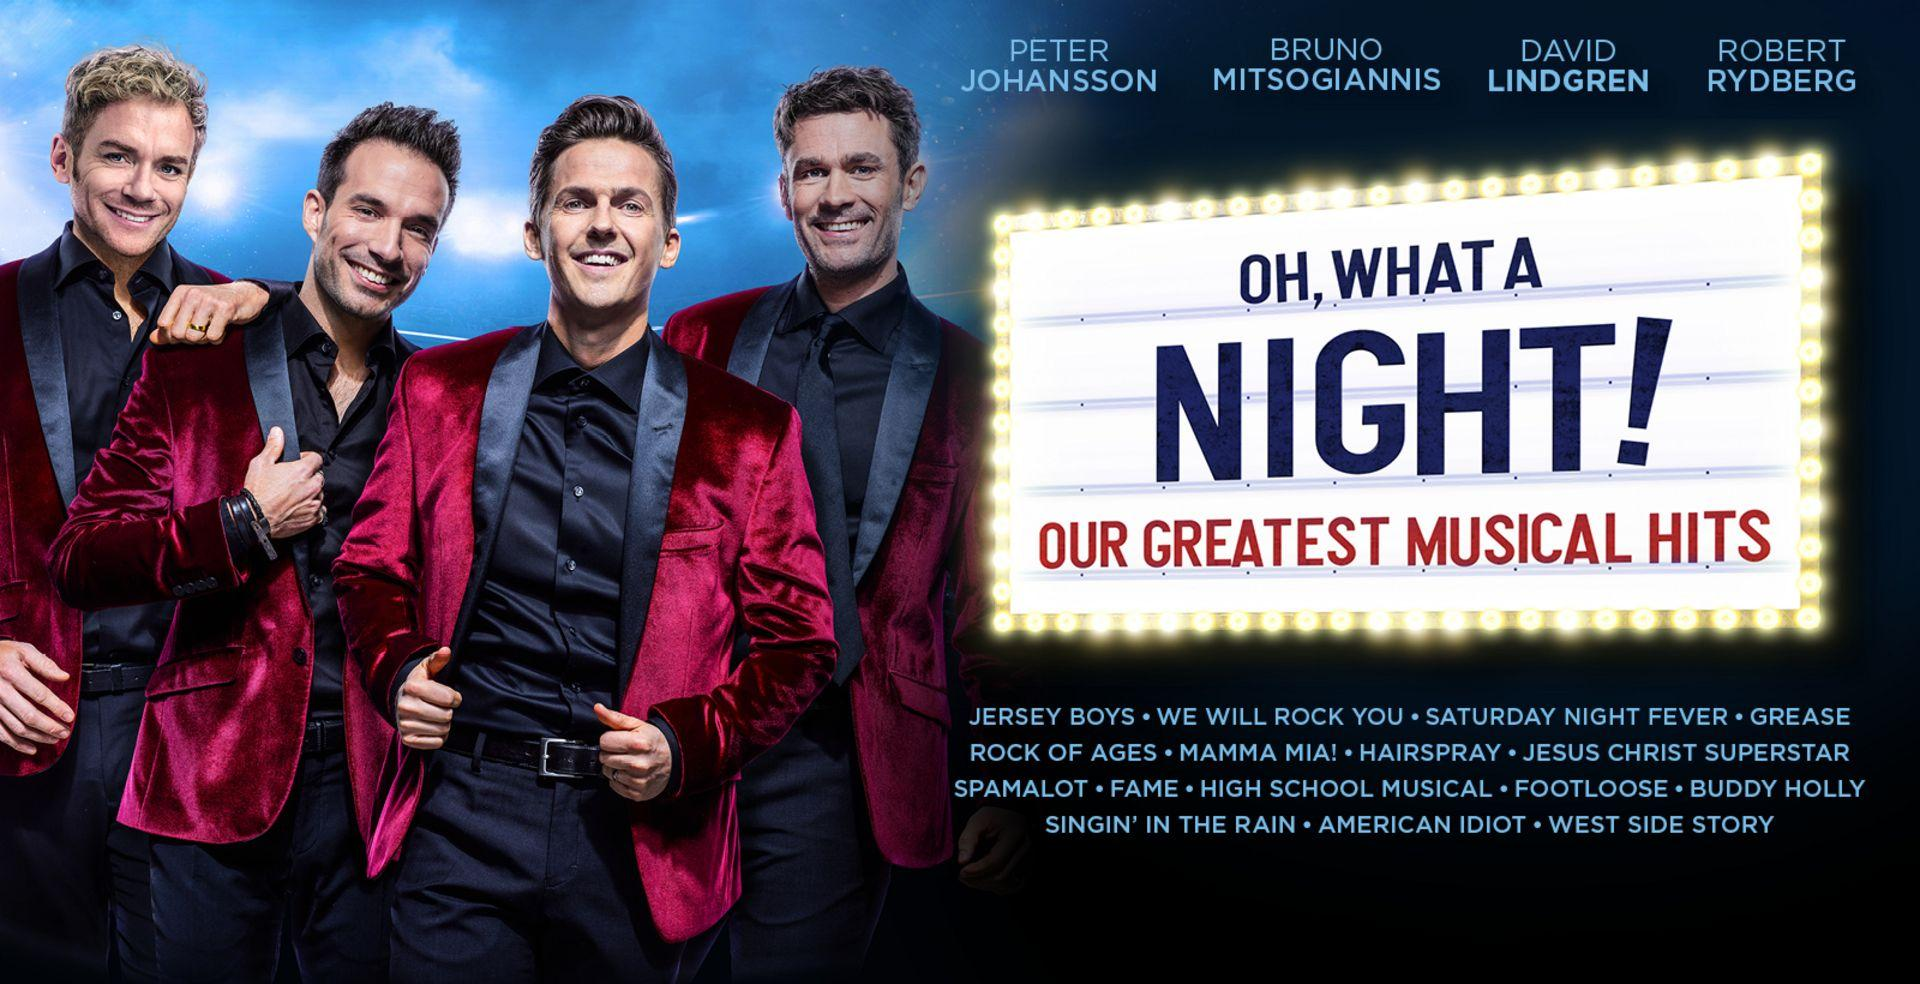 Oh what a night! -Our greatest musical hits